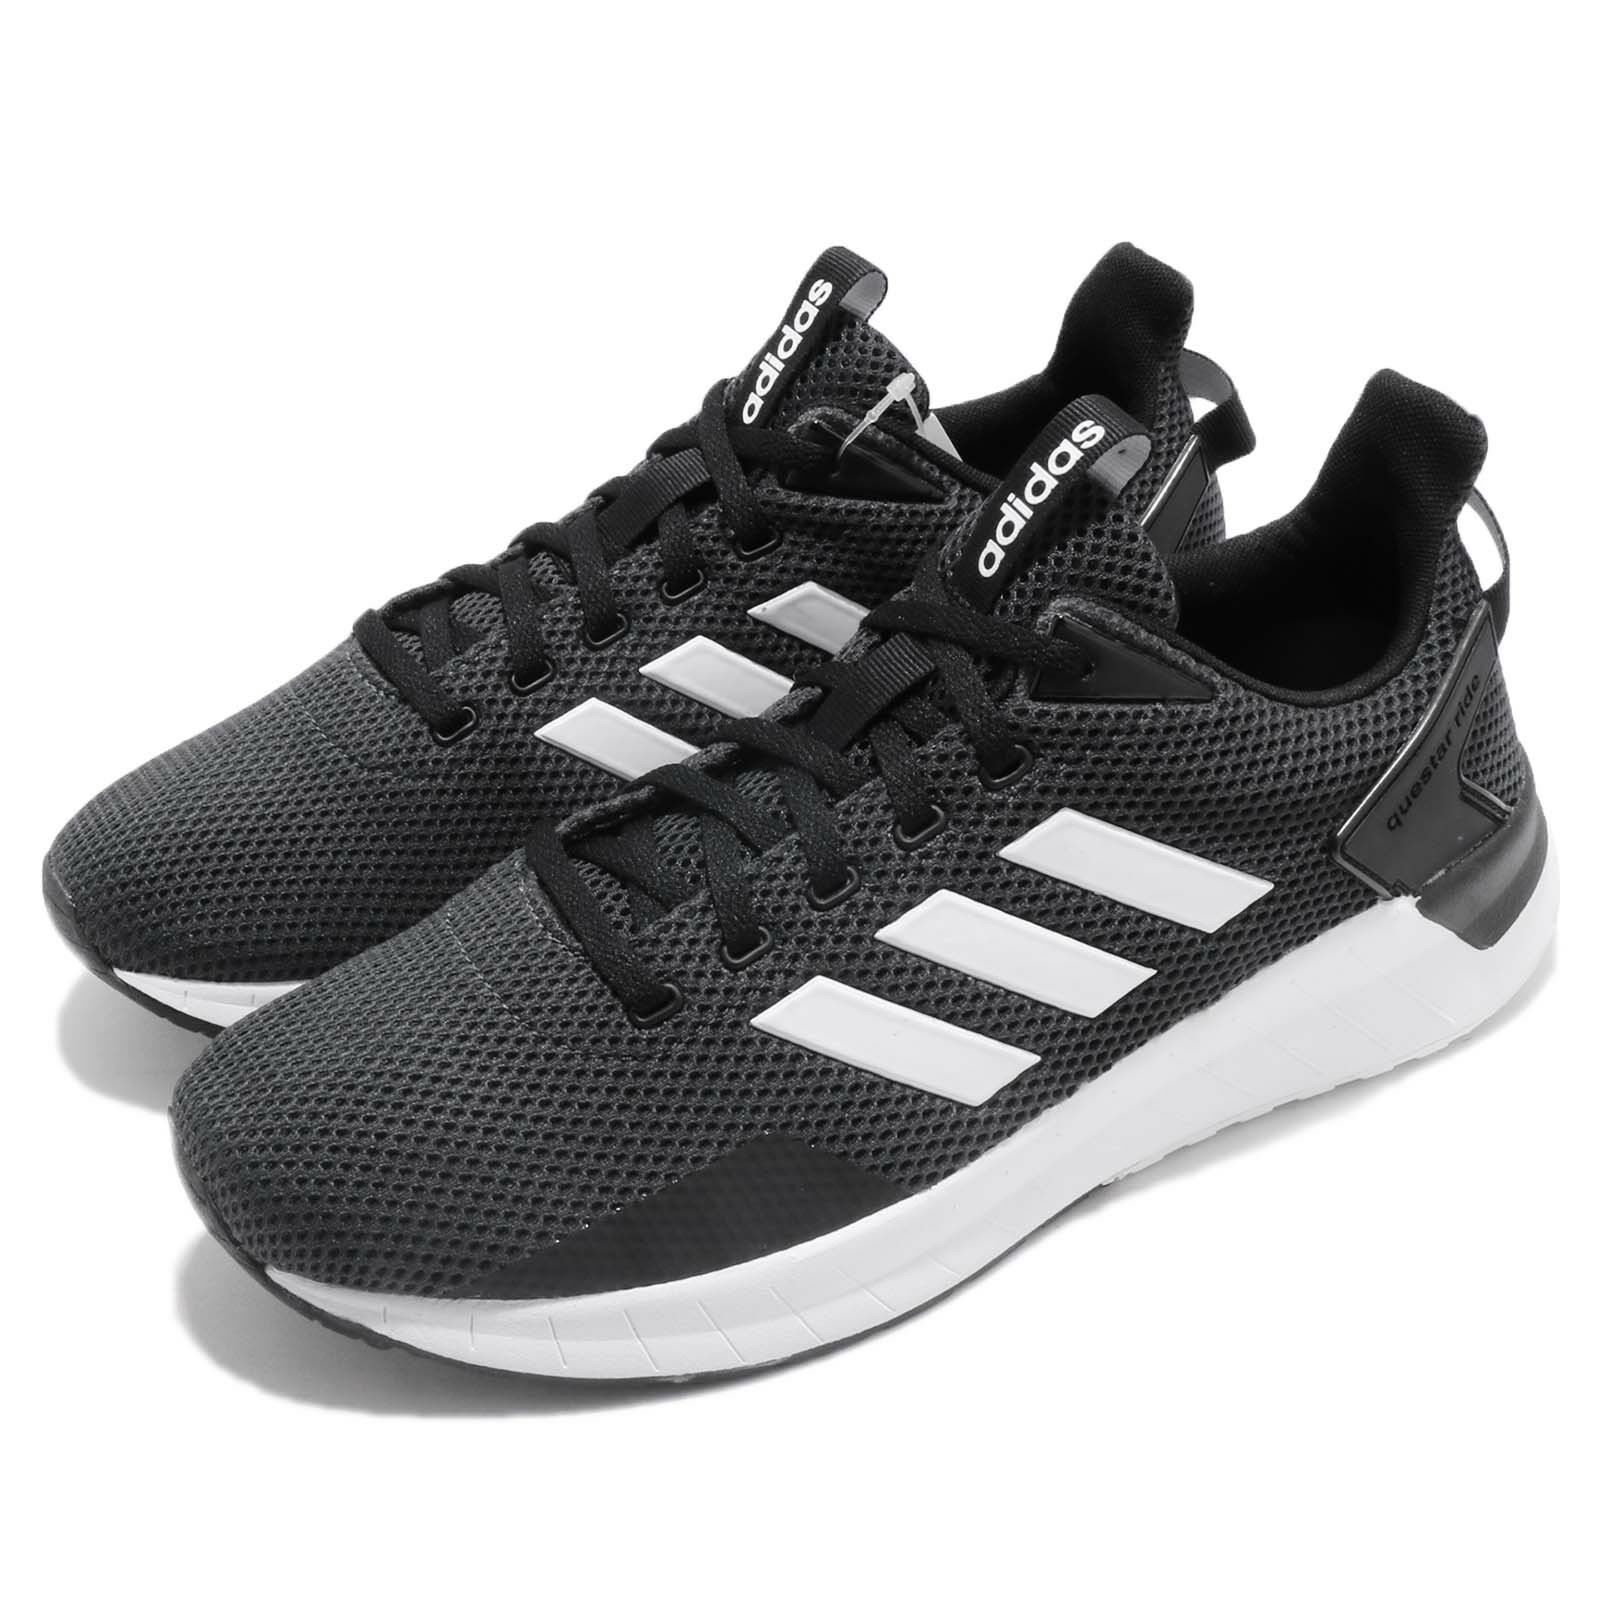 49fdd971410 ... new style adidas questar ride black white carbon running running  training shoes sneaker db1346 51f50a 7c9f3